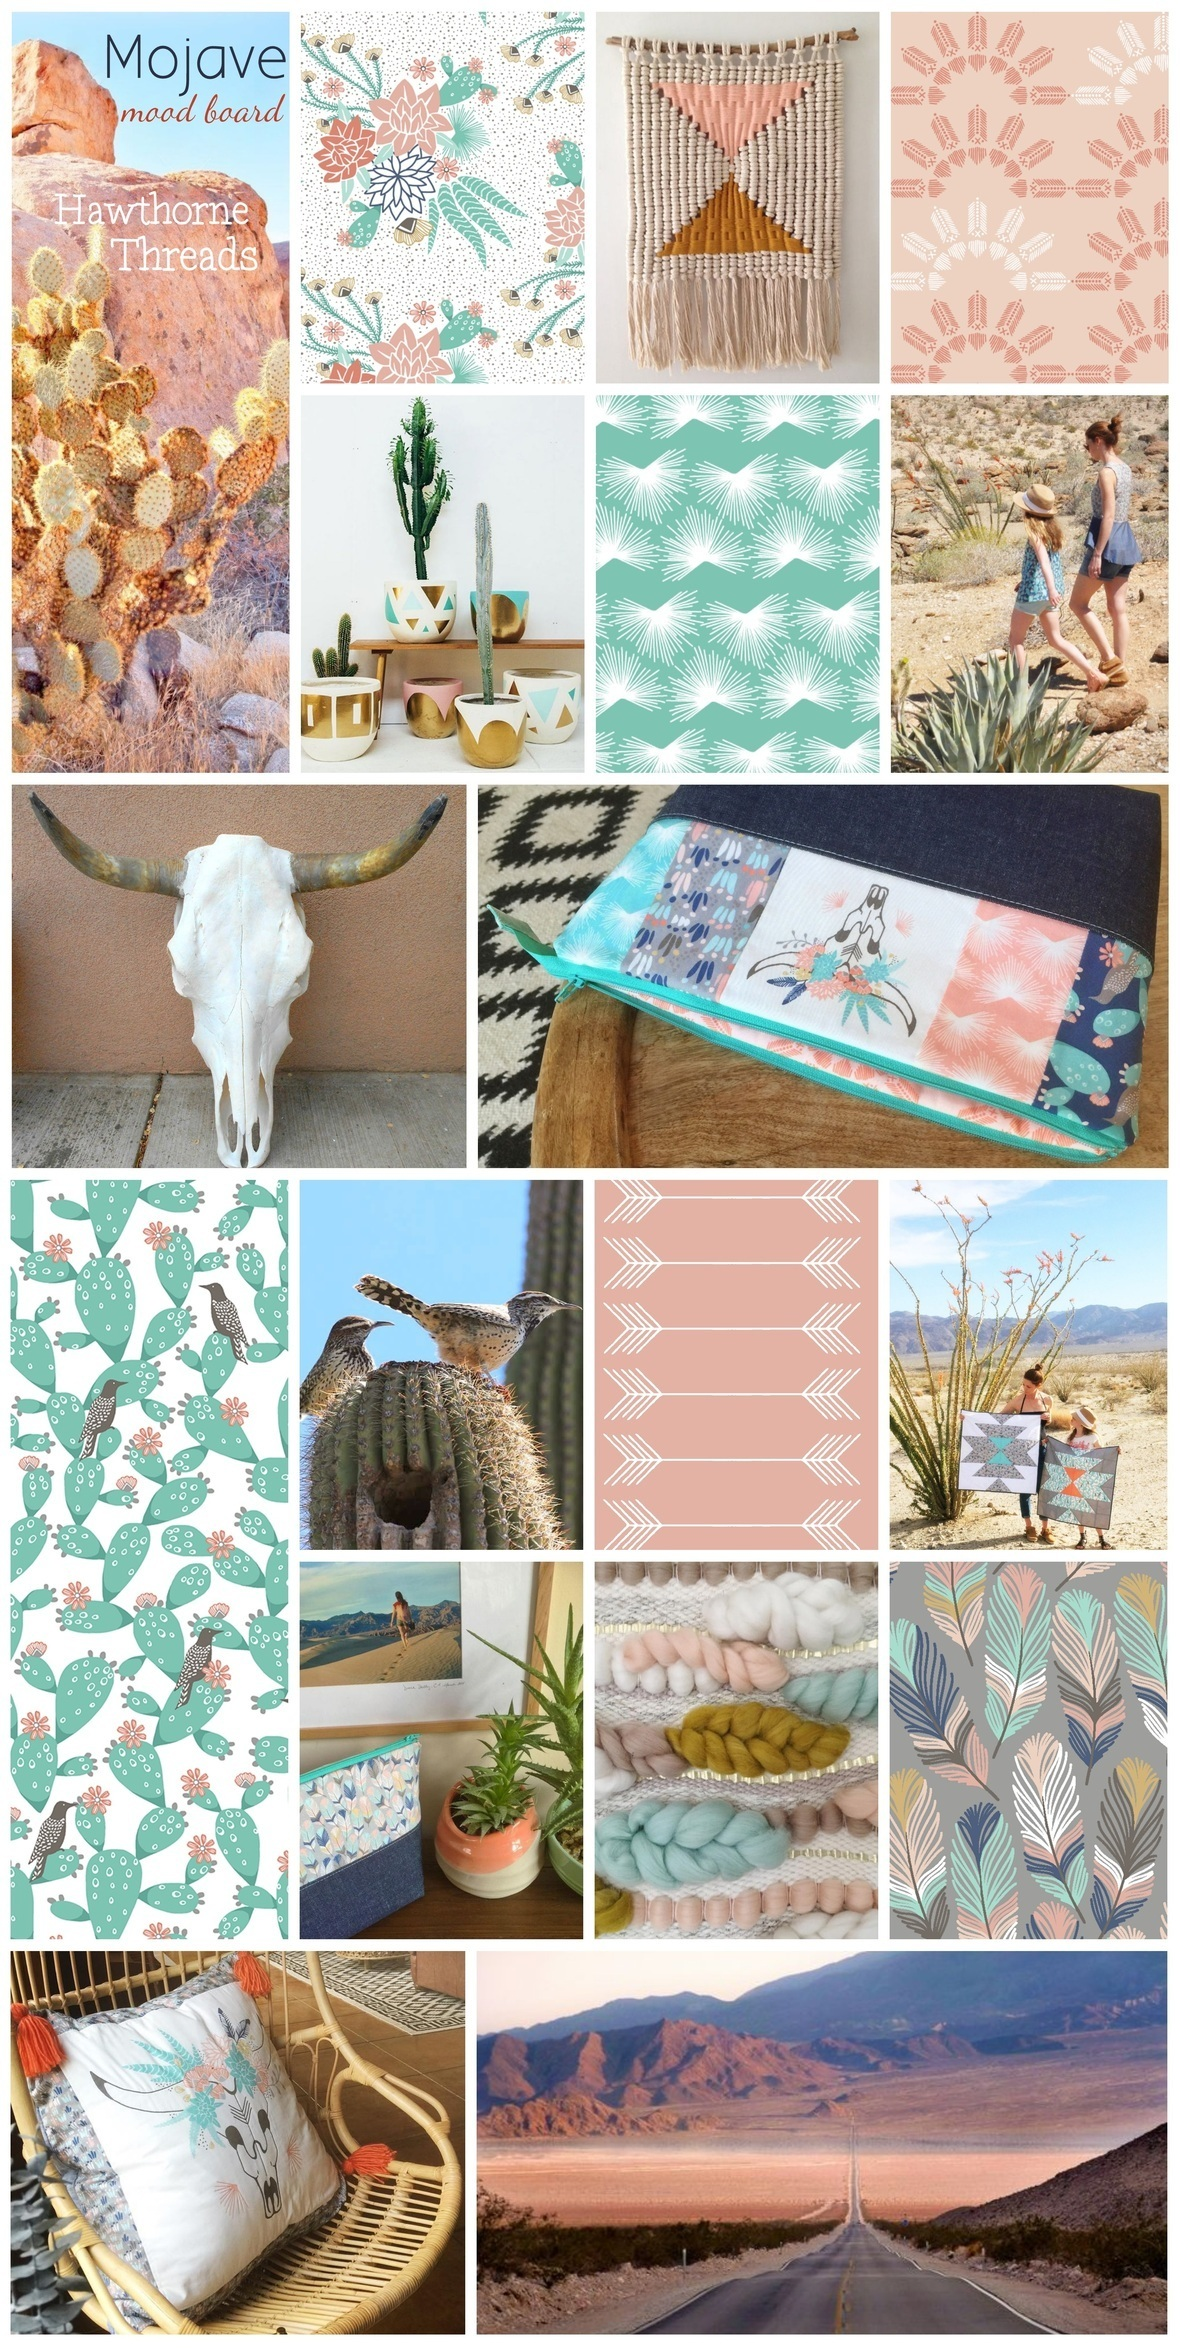 Mojave Fabric Mood Board from Hawthorne Threads